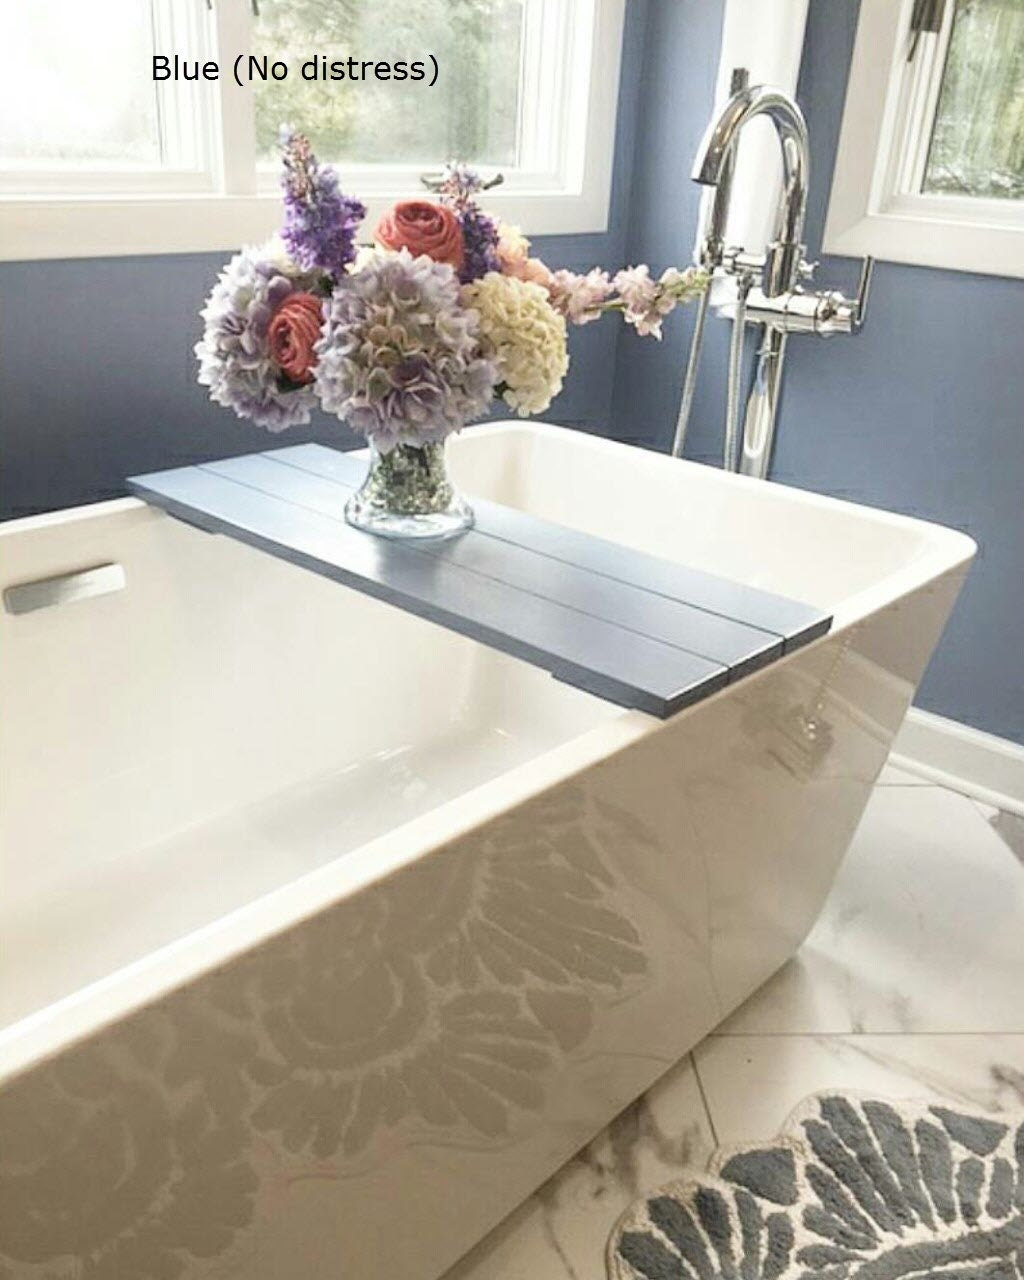 Bath Caddy   Bathtub Tray   Bath Tray   Bath Shelf   Bathroom Decor   Bath  Storage   Farmhouse Bath   Farmhouse Bathroom